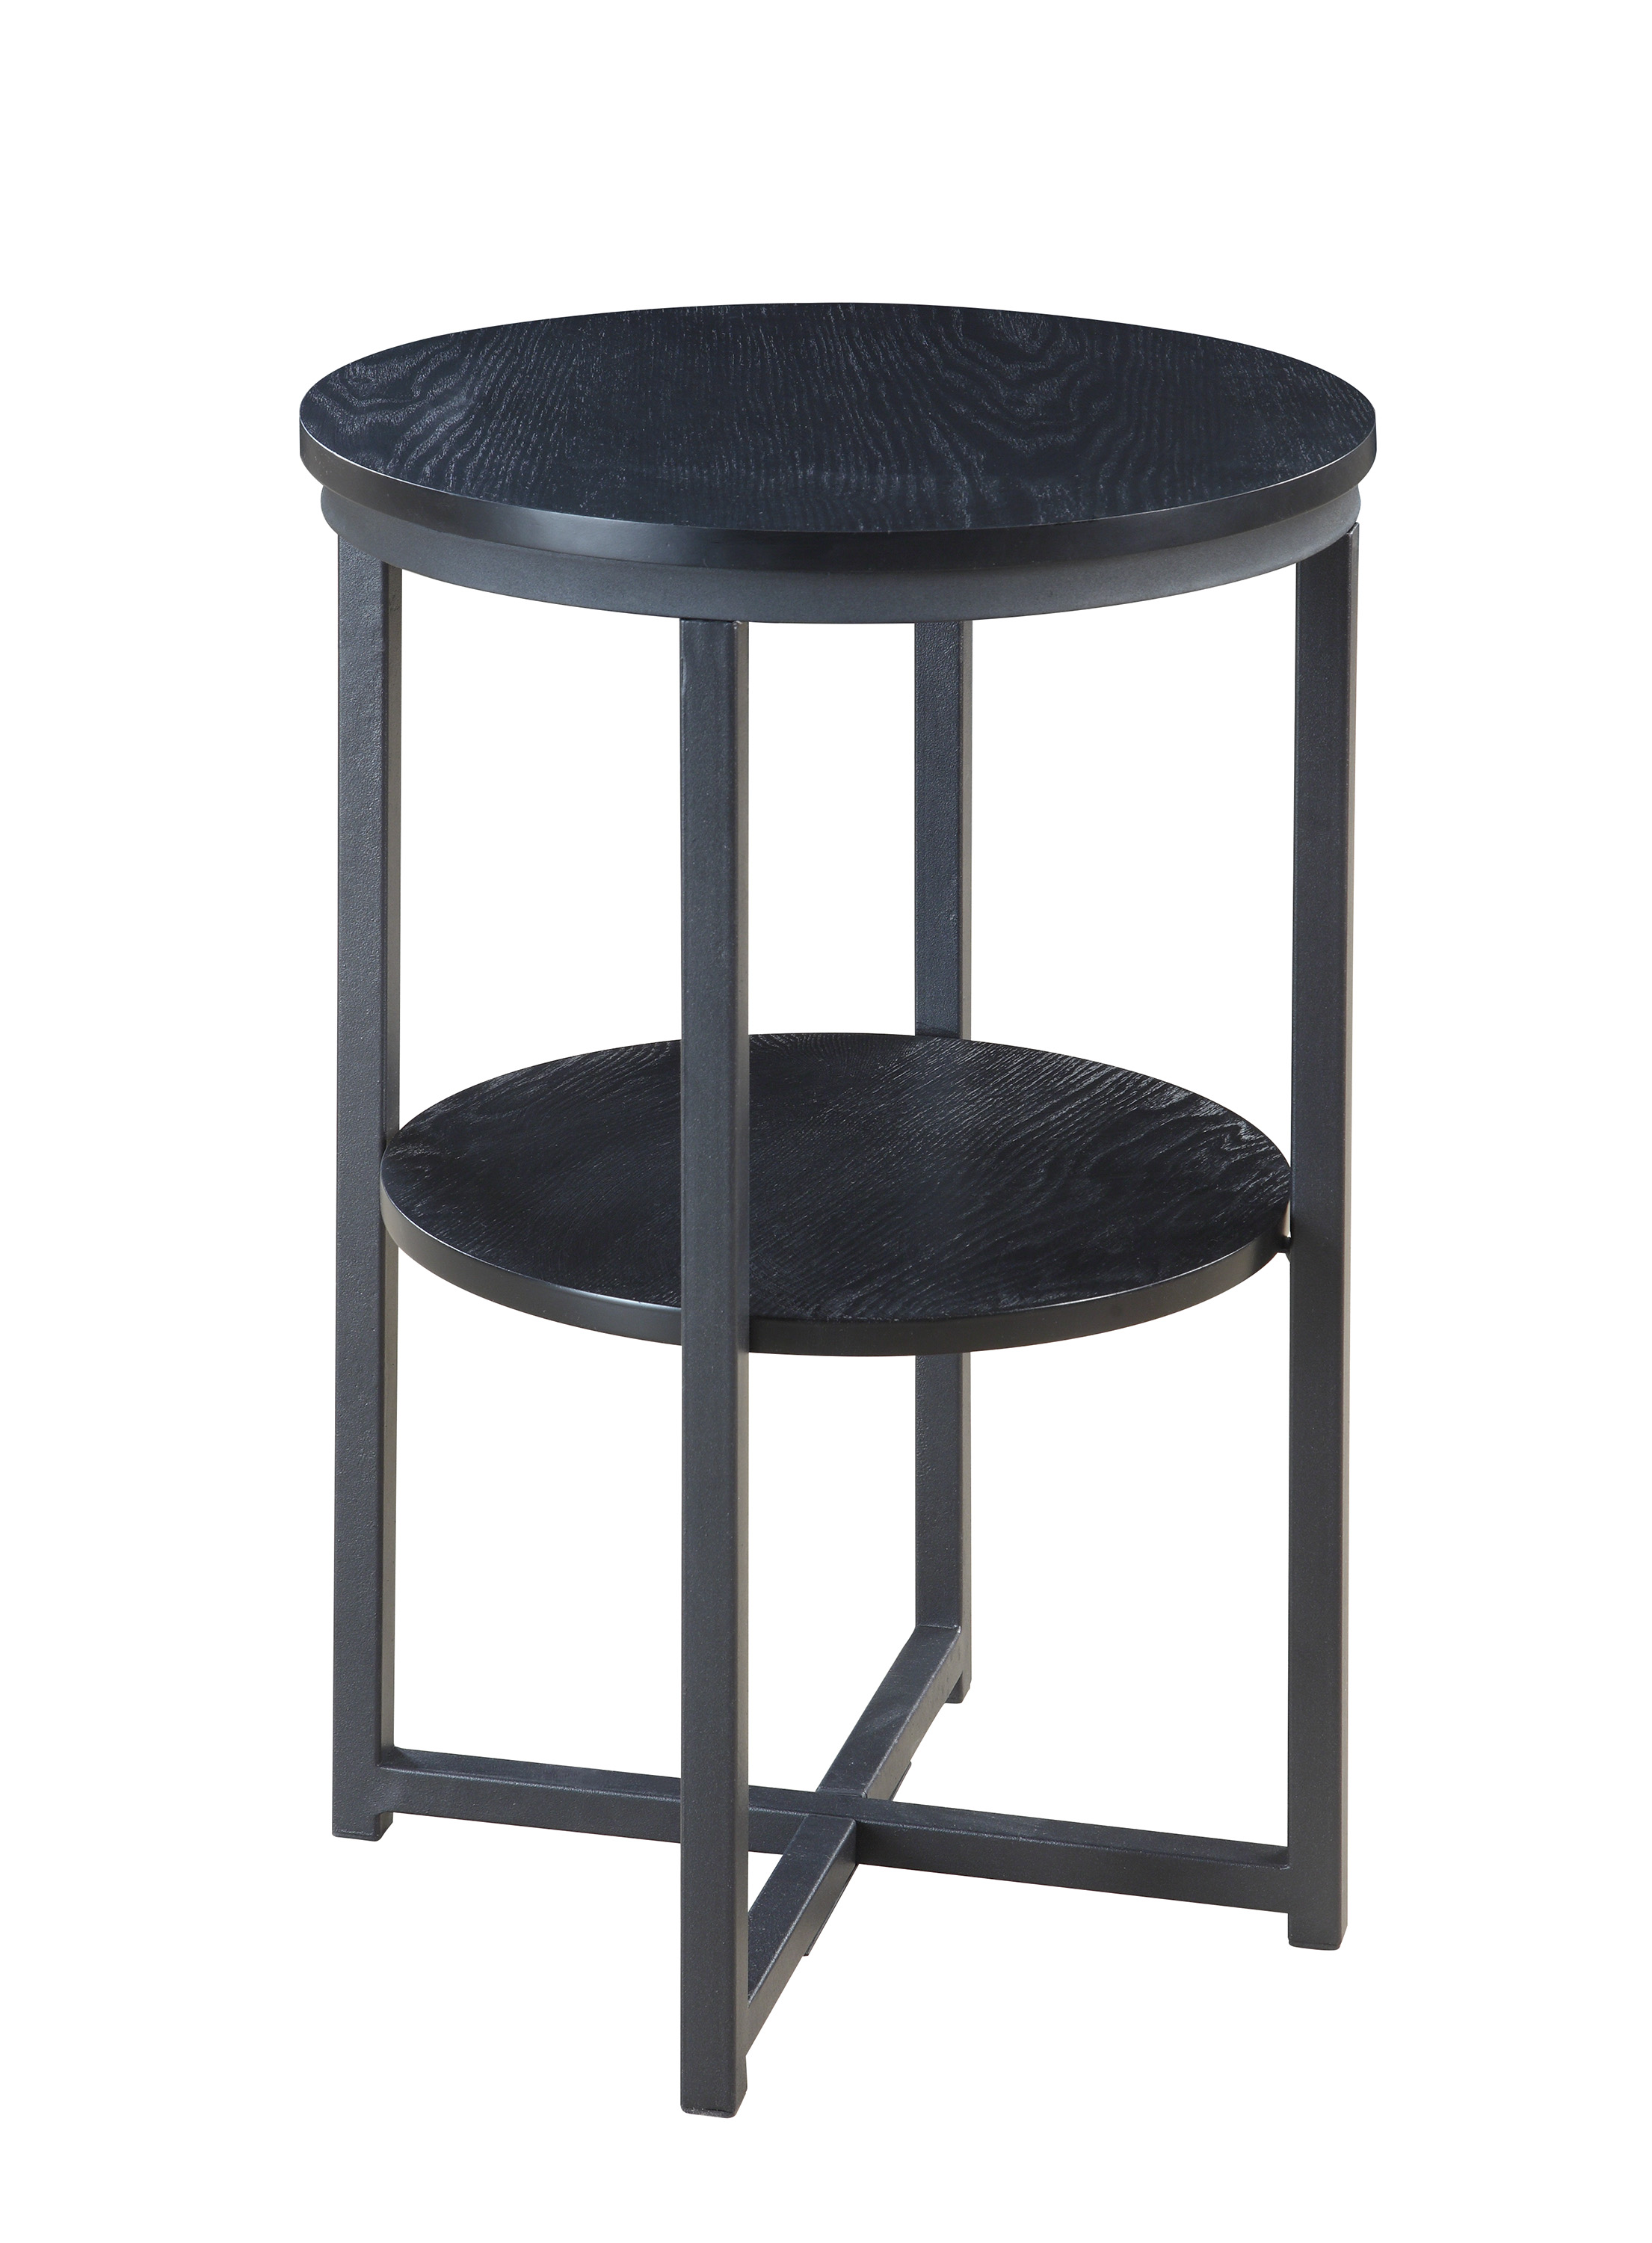 Crown Mark Chairside Tables Chairside Table - Item Number: 7905